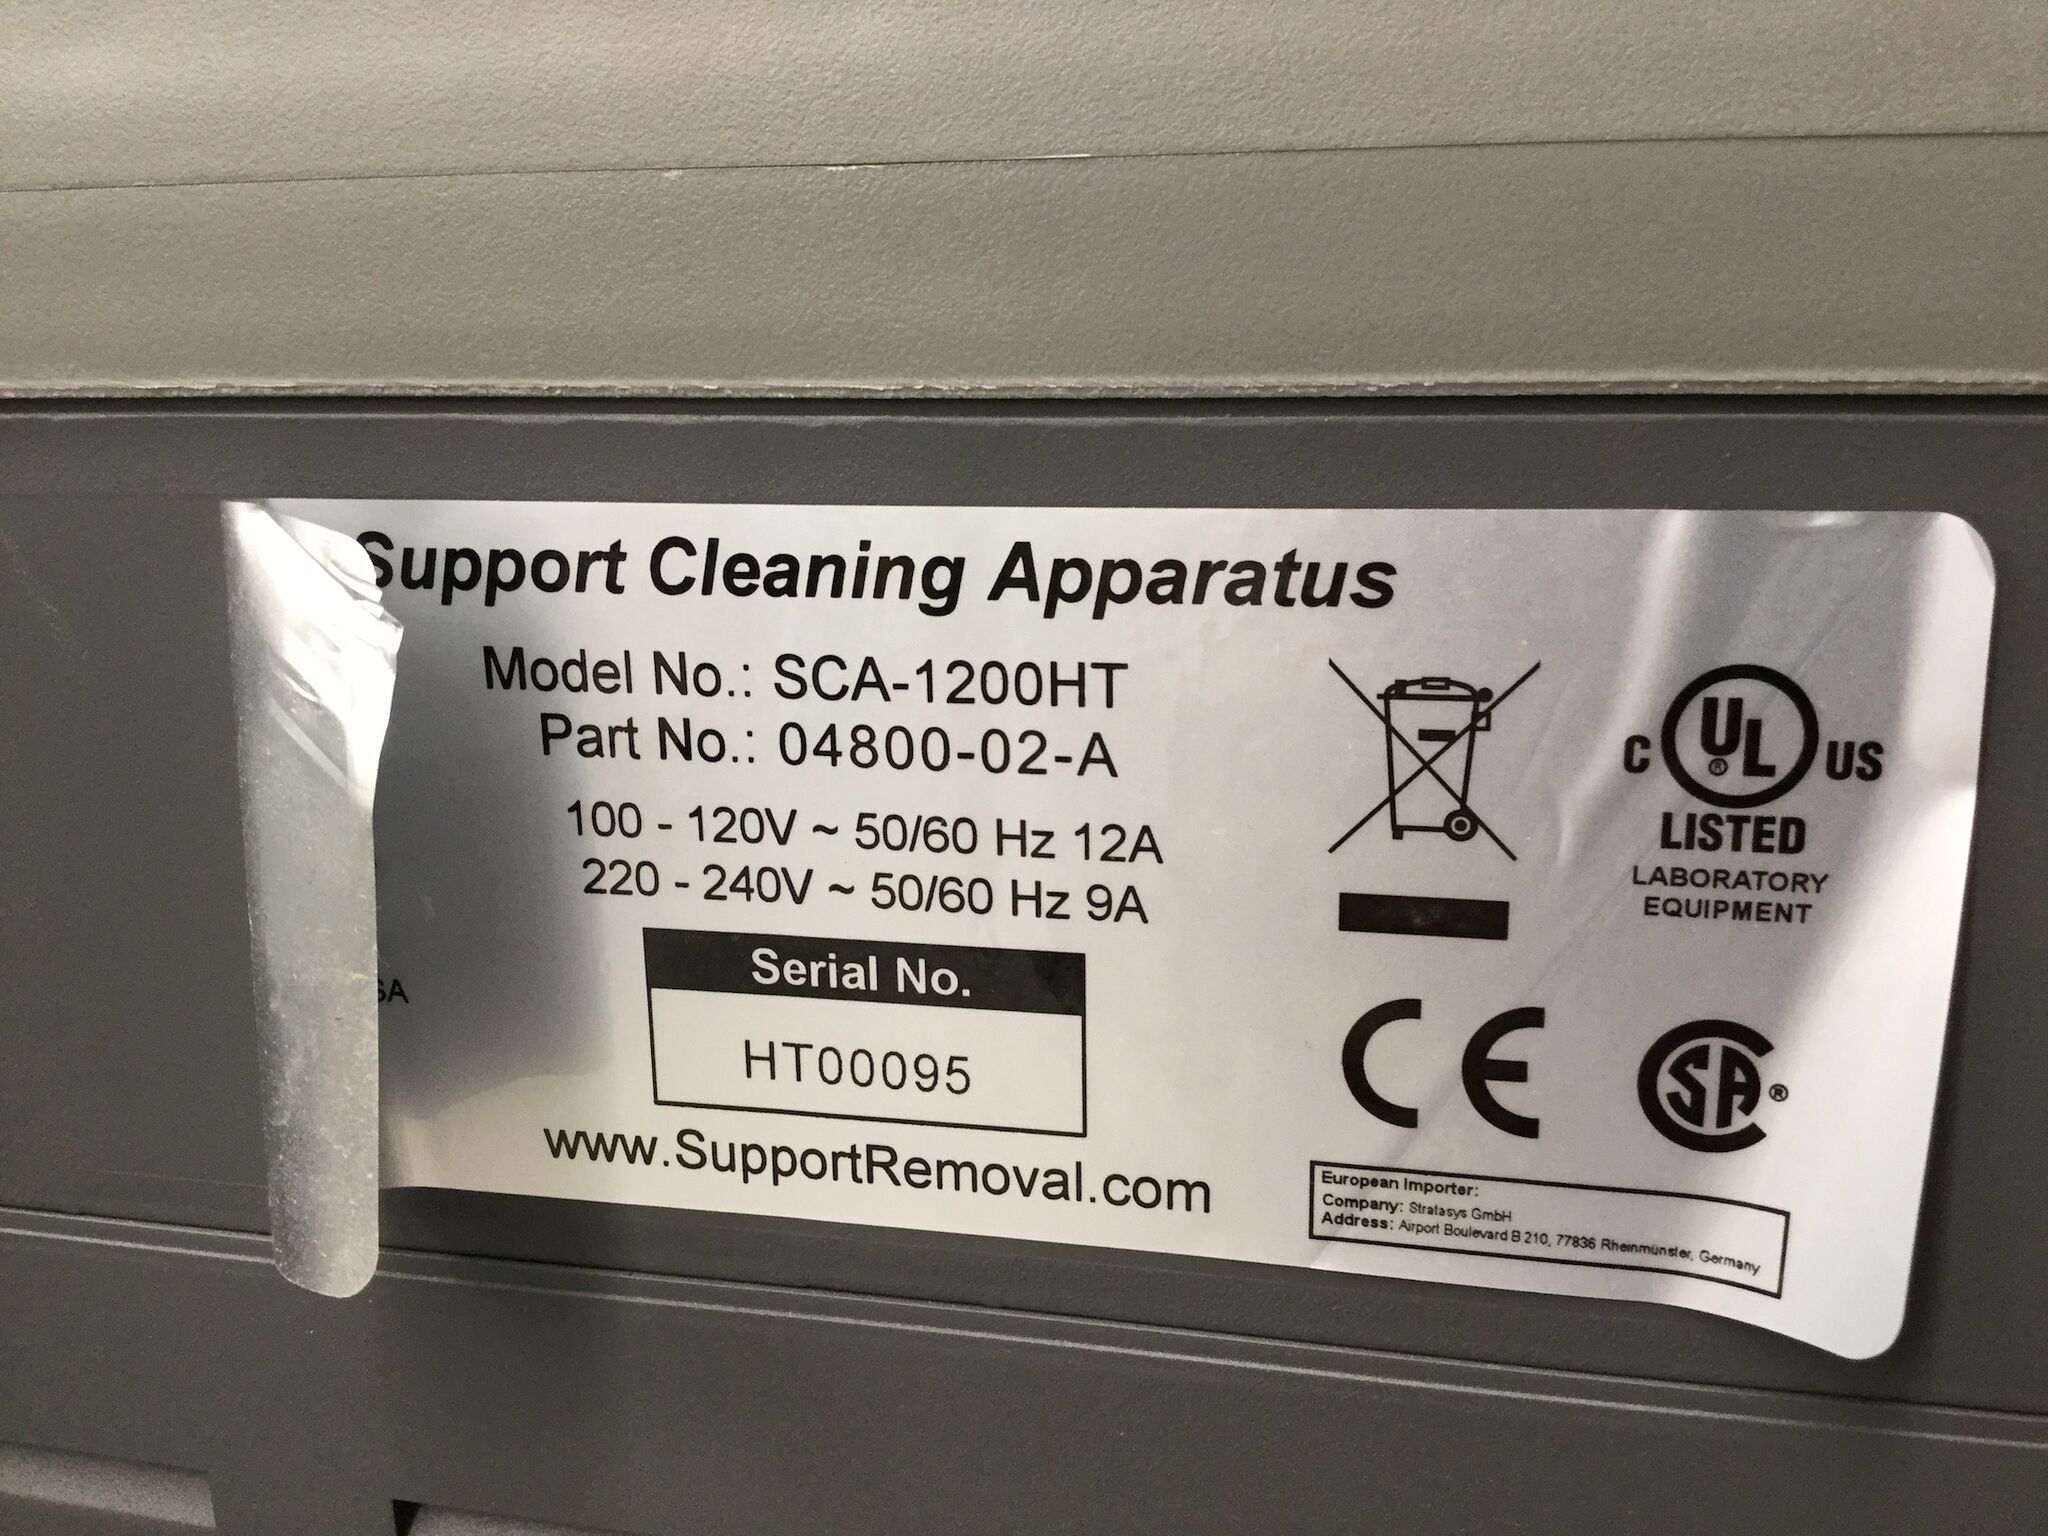 Lot 23 - Support Cleaning Apparatus Model SCA-1200HT